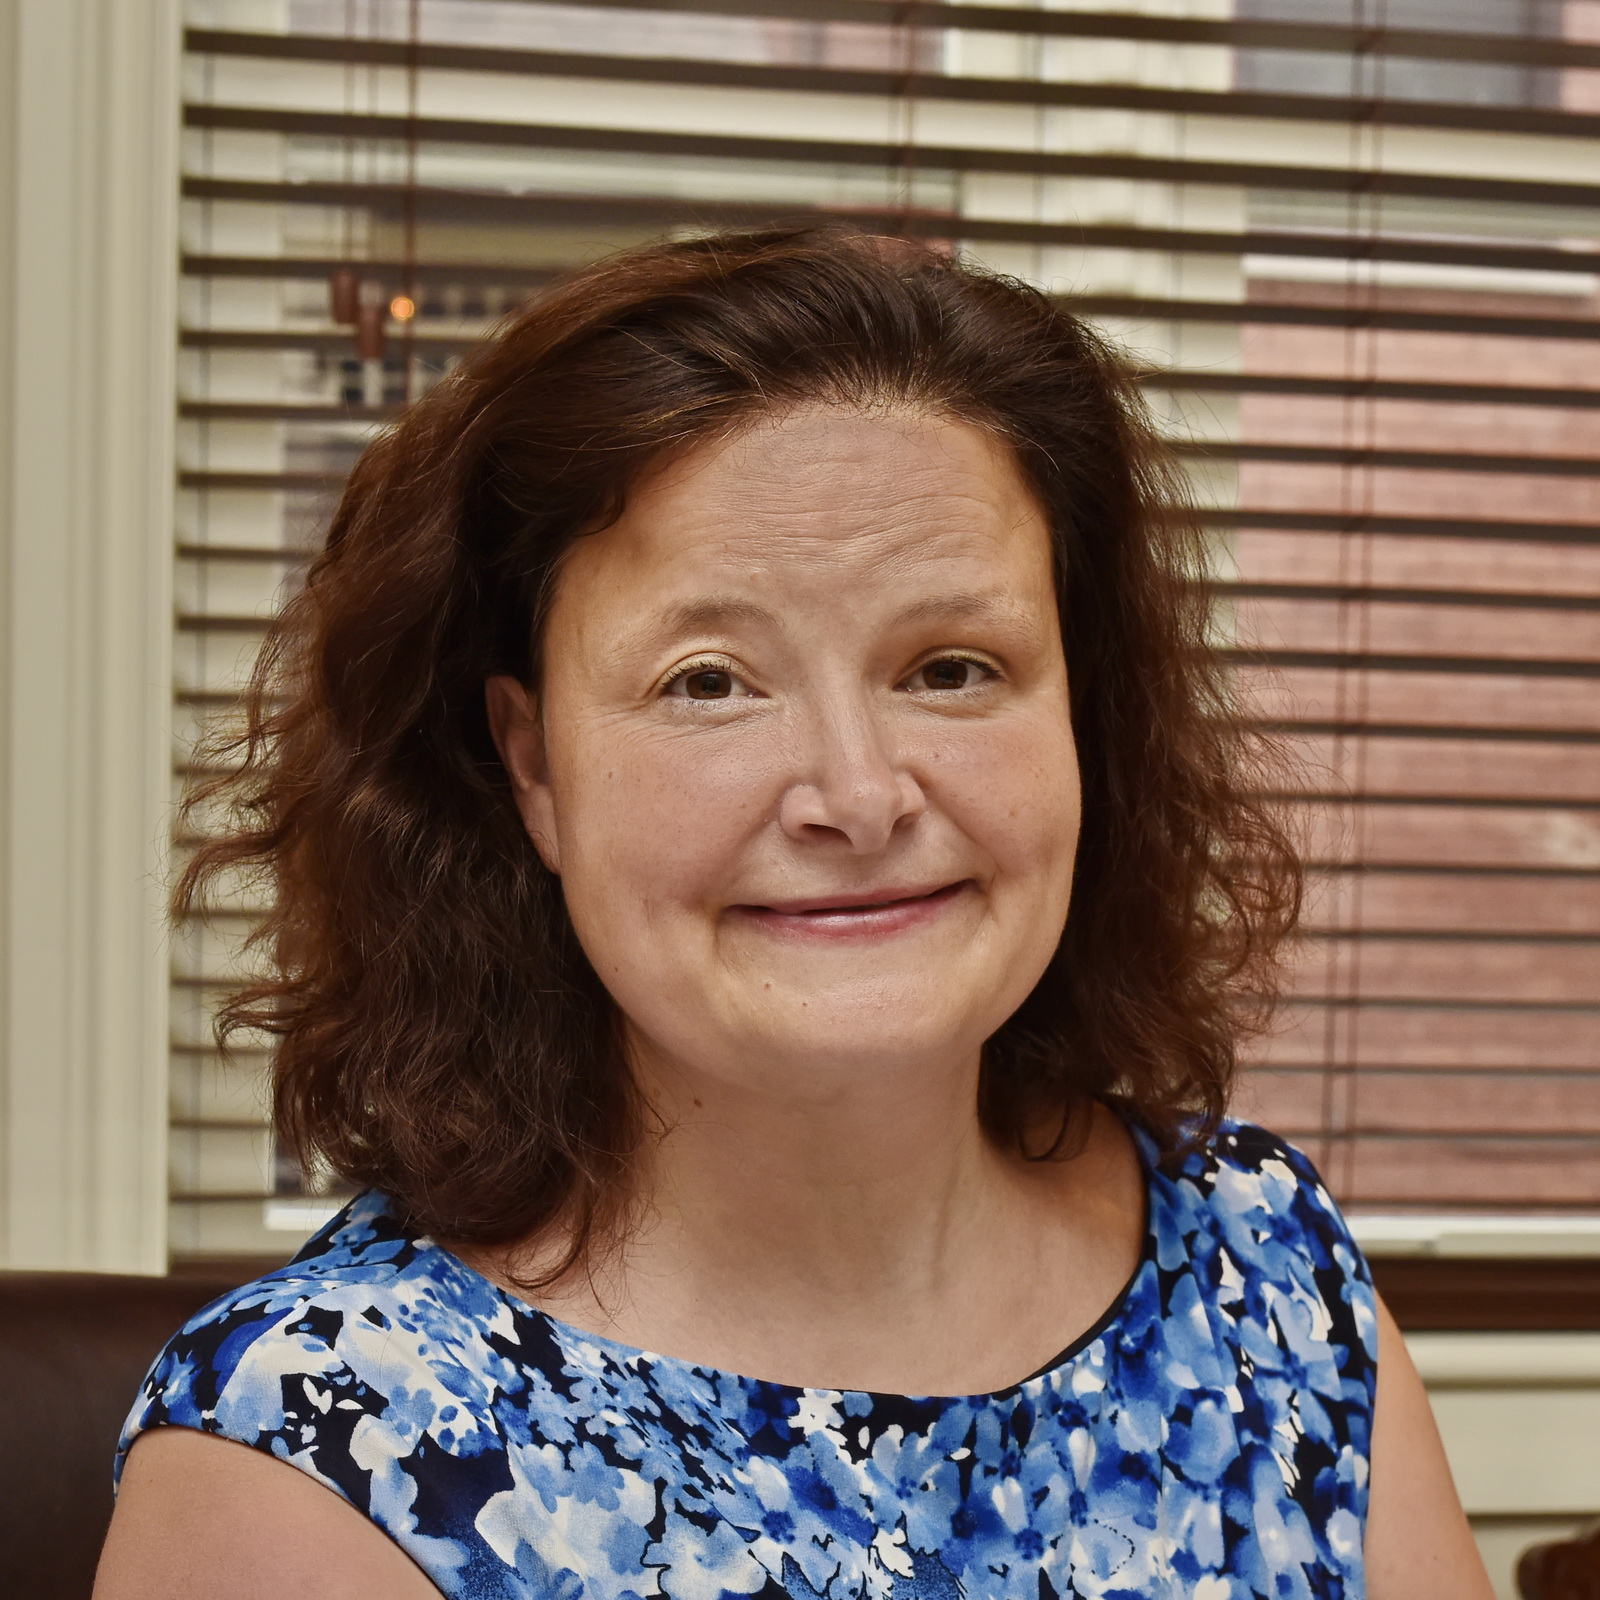 Headshot of Tina Hill, BBBSO President of the Board of Directors